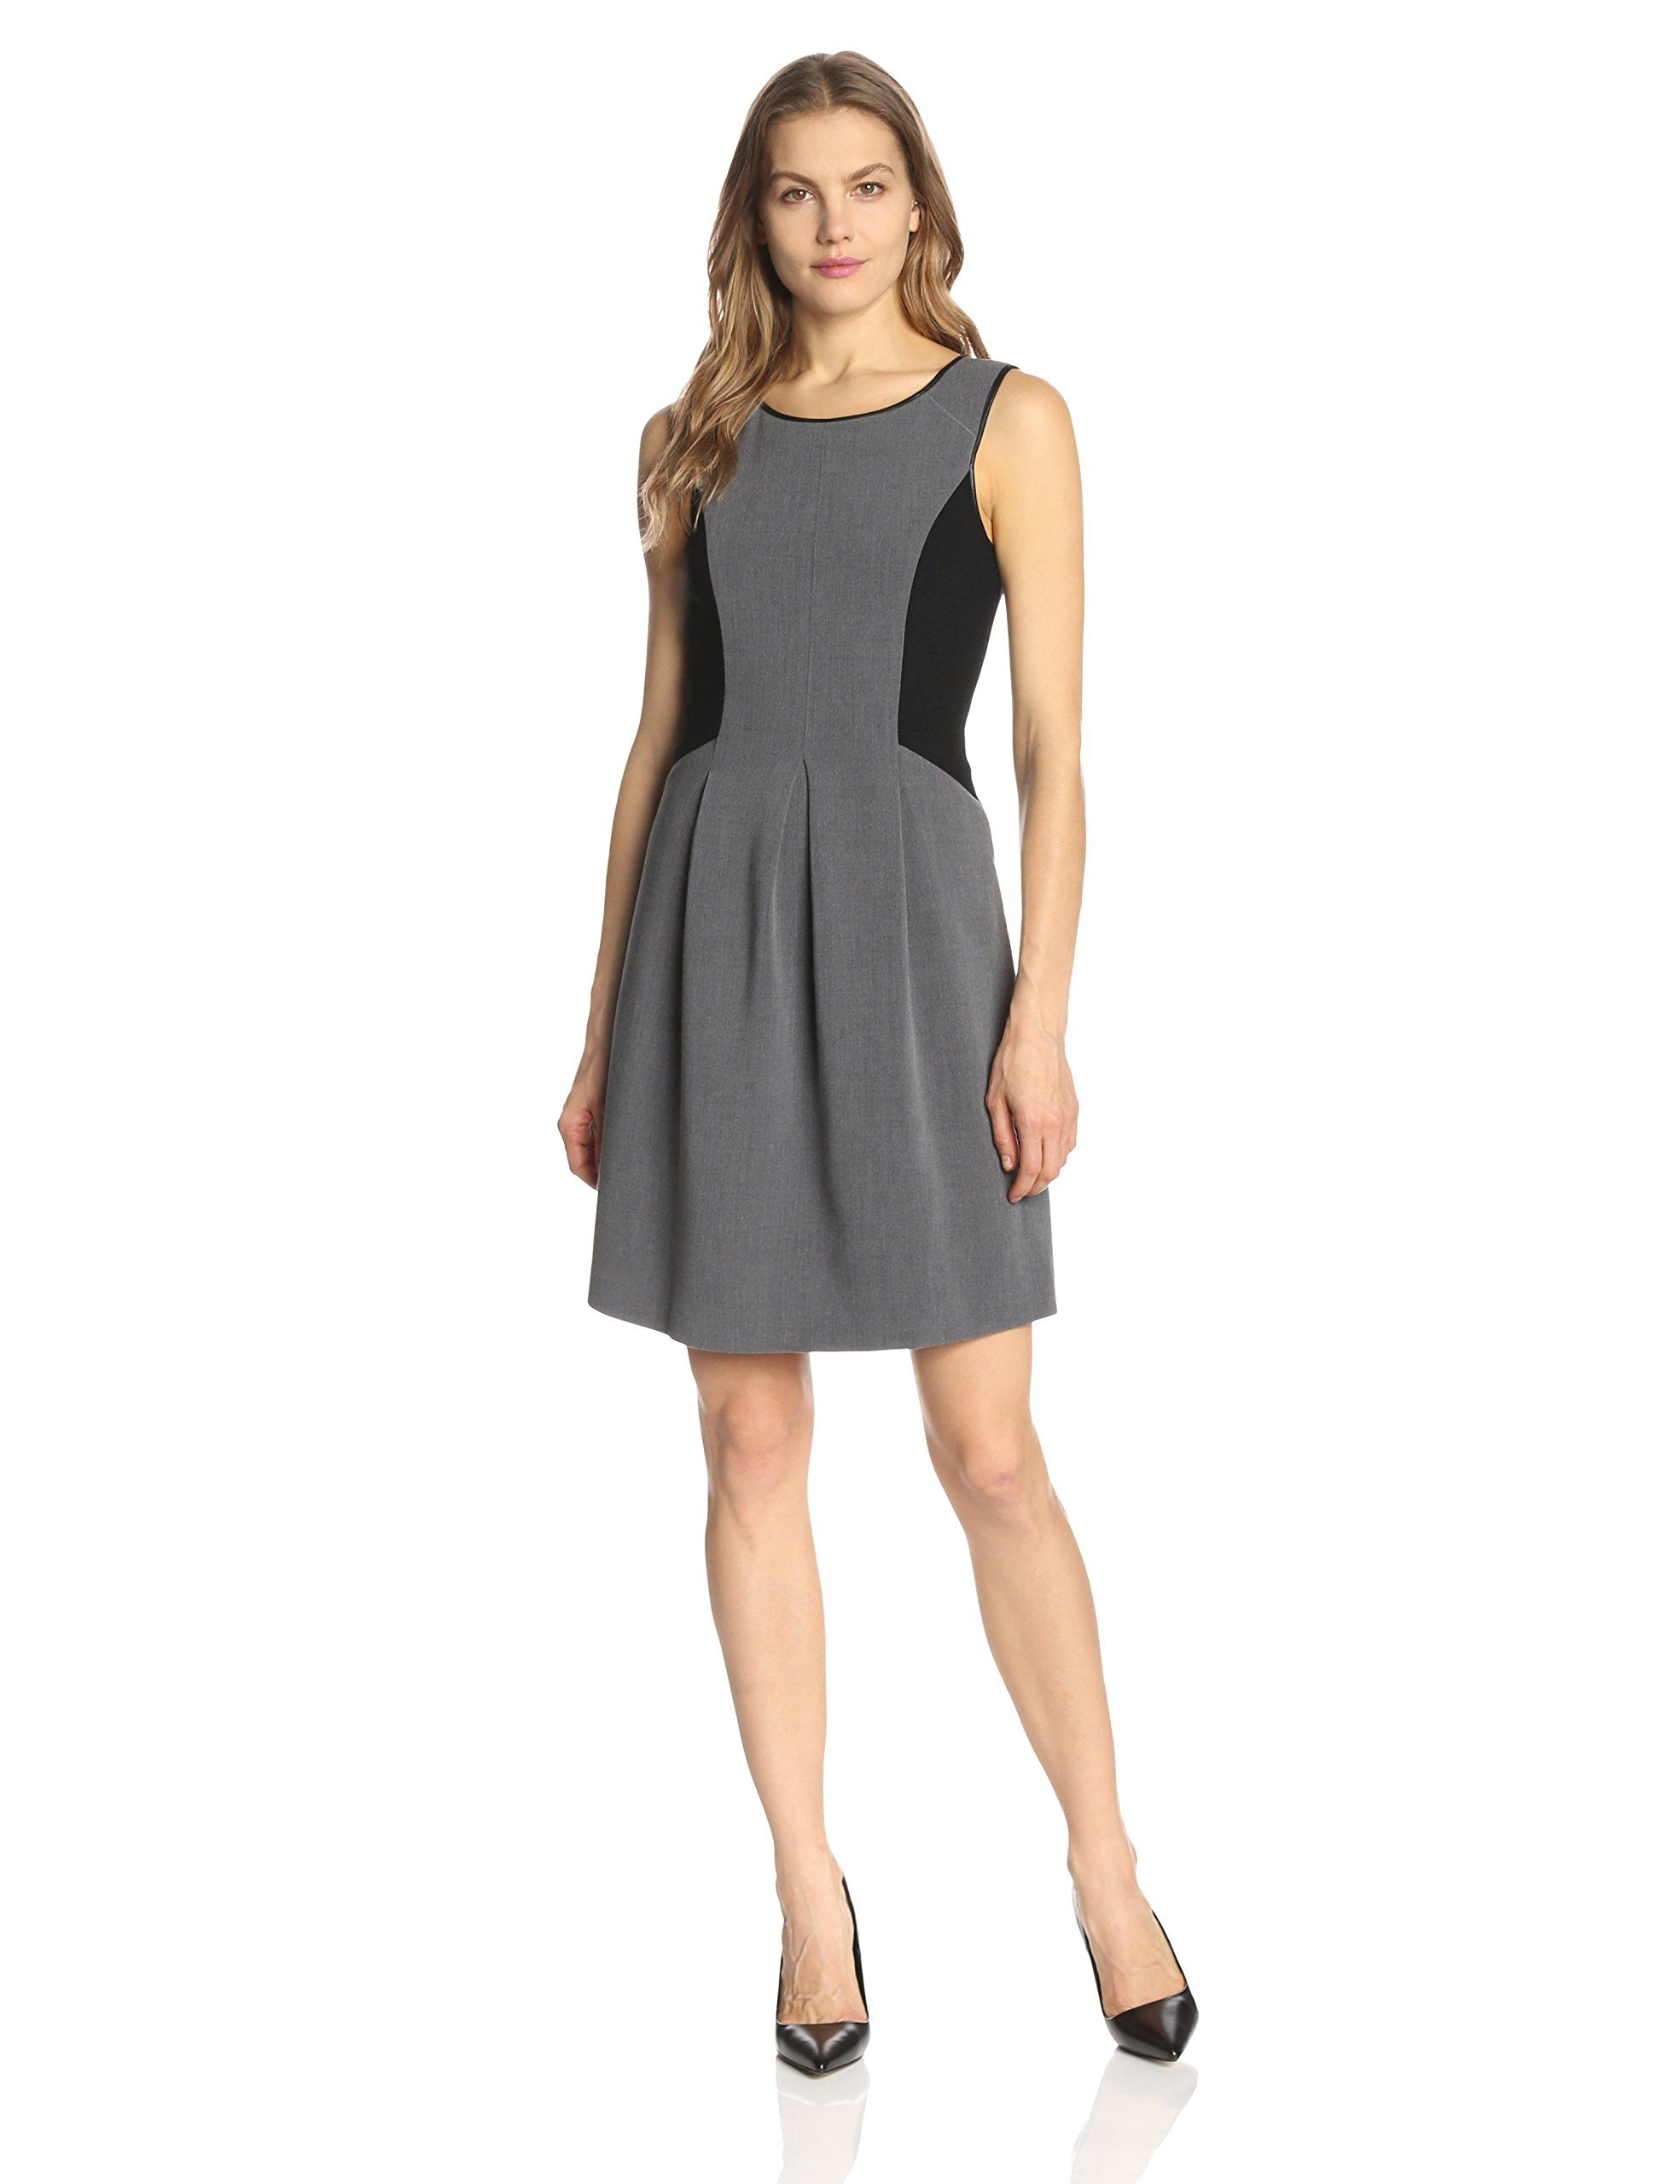 2381183f58d475 Adrianna Papell Women s Sleeveless Skater Dress with Faux Leather Binding  and Sweater Trim